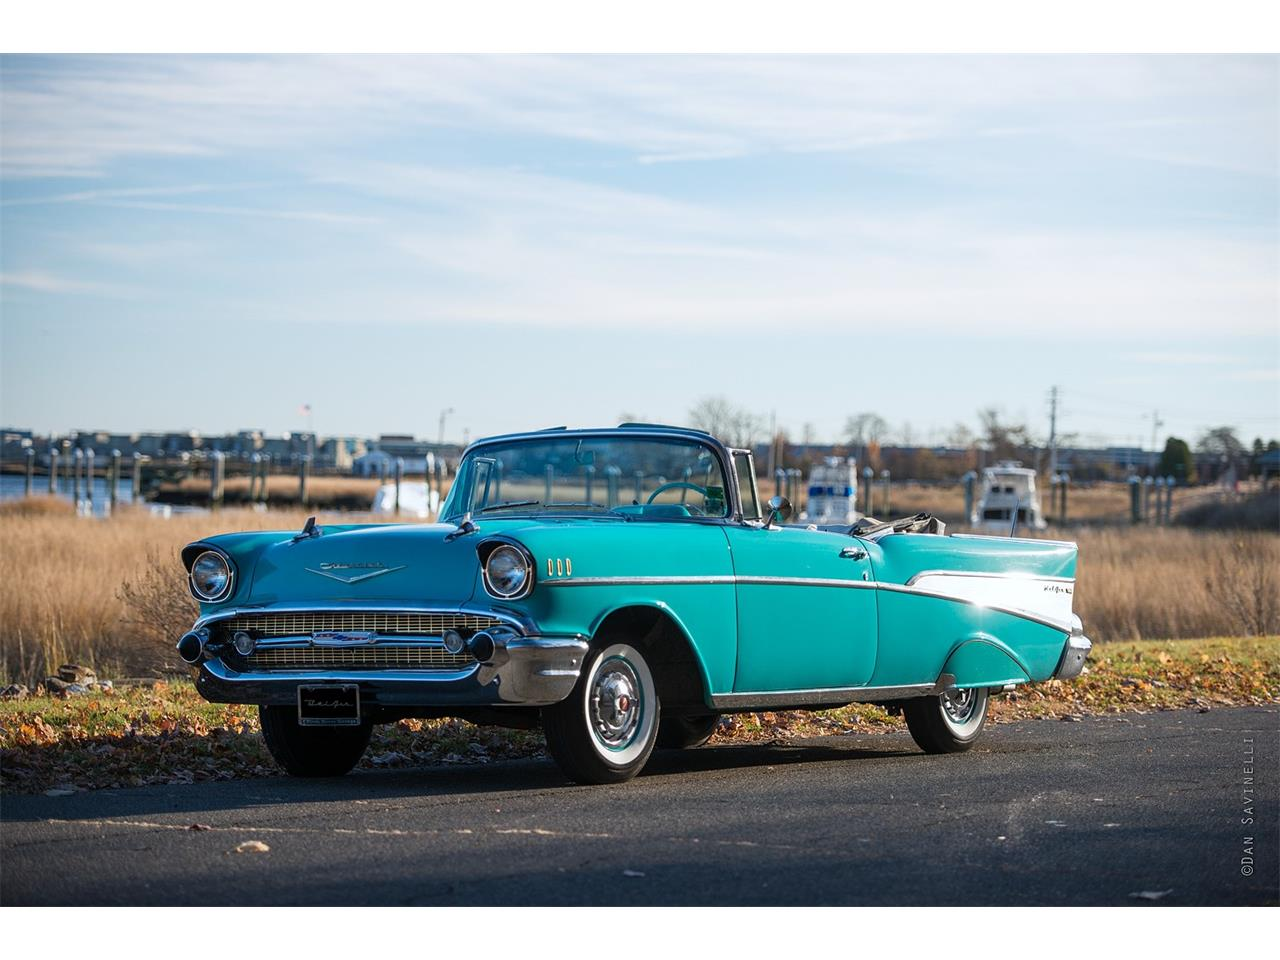 Large Picture of 1957 Chevrolet Bel Air - $75,000.00 - KDHZ